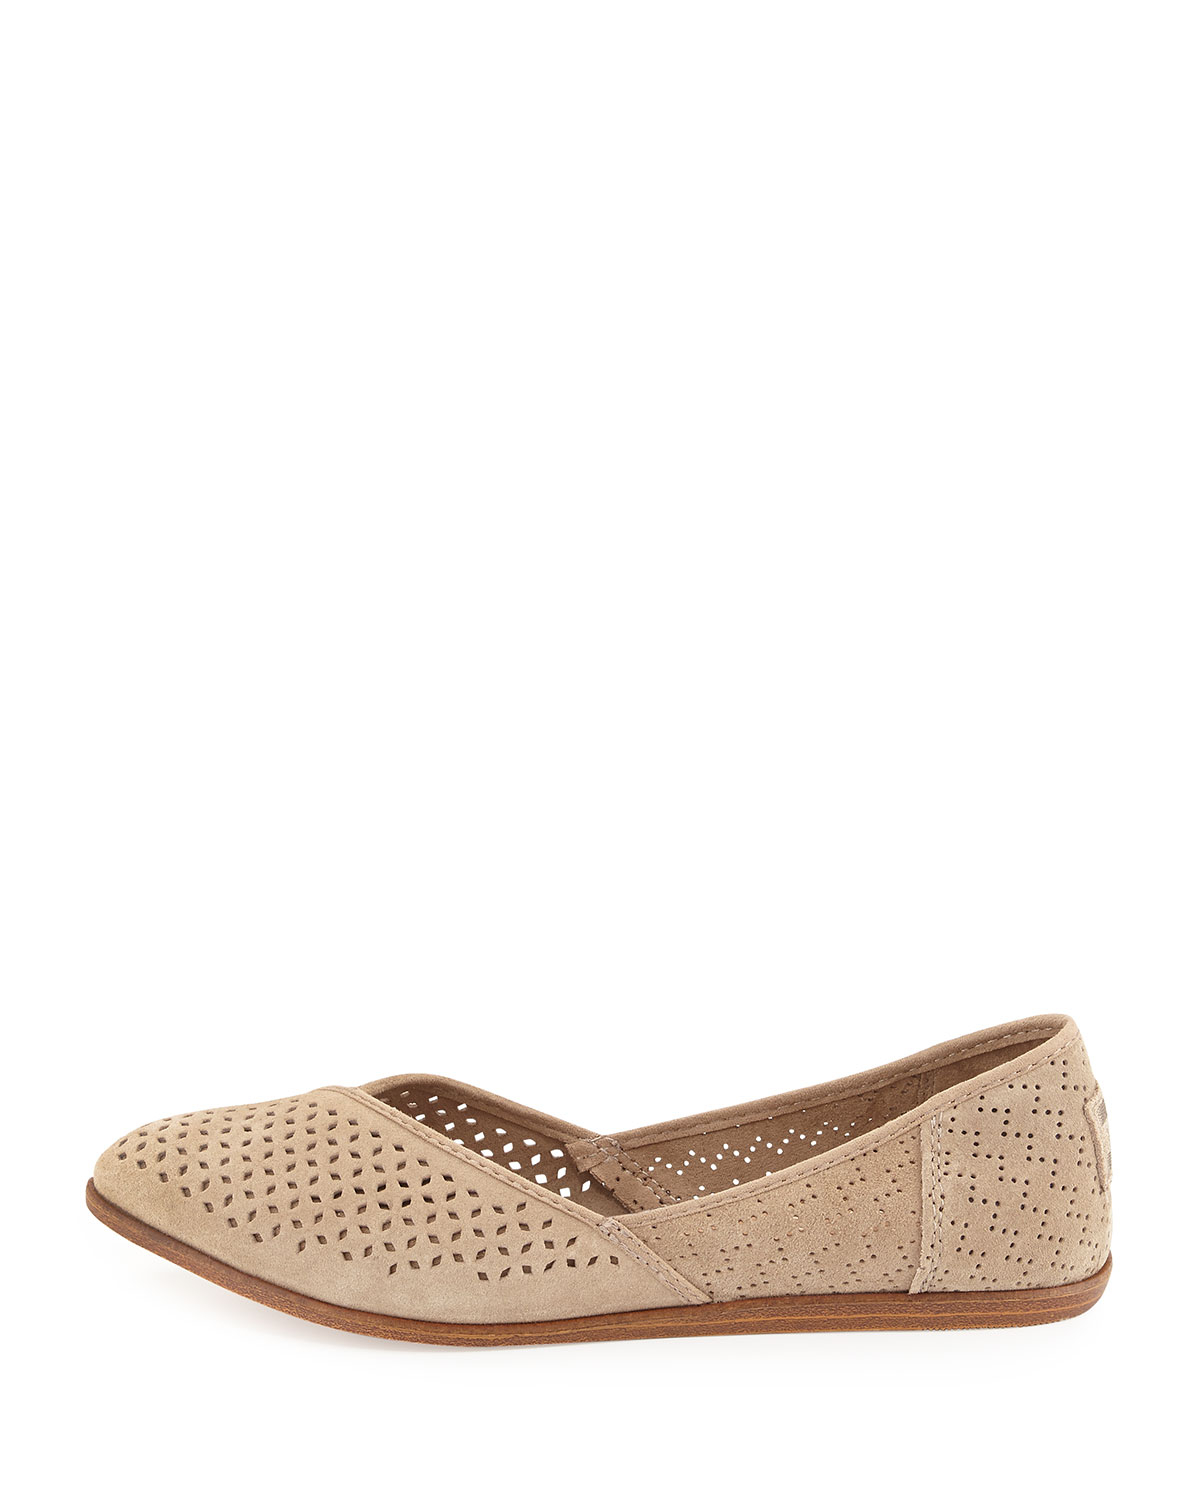 cfc97bee6 TOMS Jutti Perforated Suede Flats in Natural - Lyst